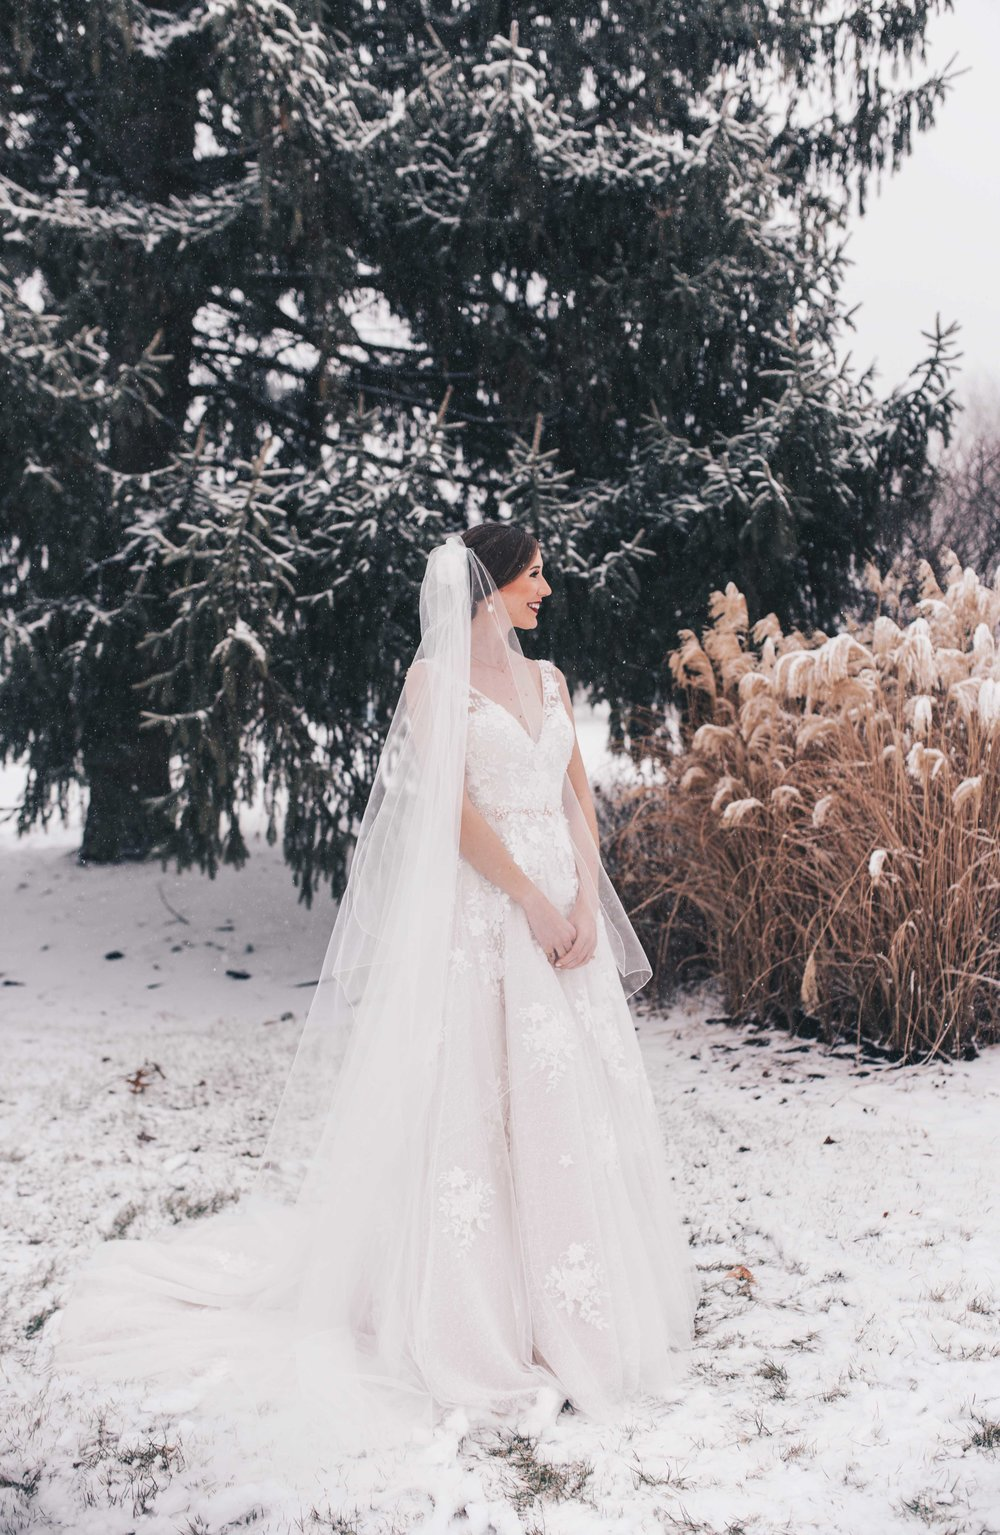 Winter Wonderland Wedding, Winter Wedding, Illinois Wedding, Winter Bride, Winter Wedding Photos